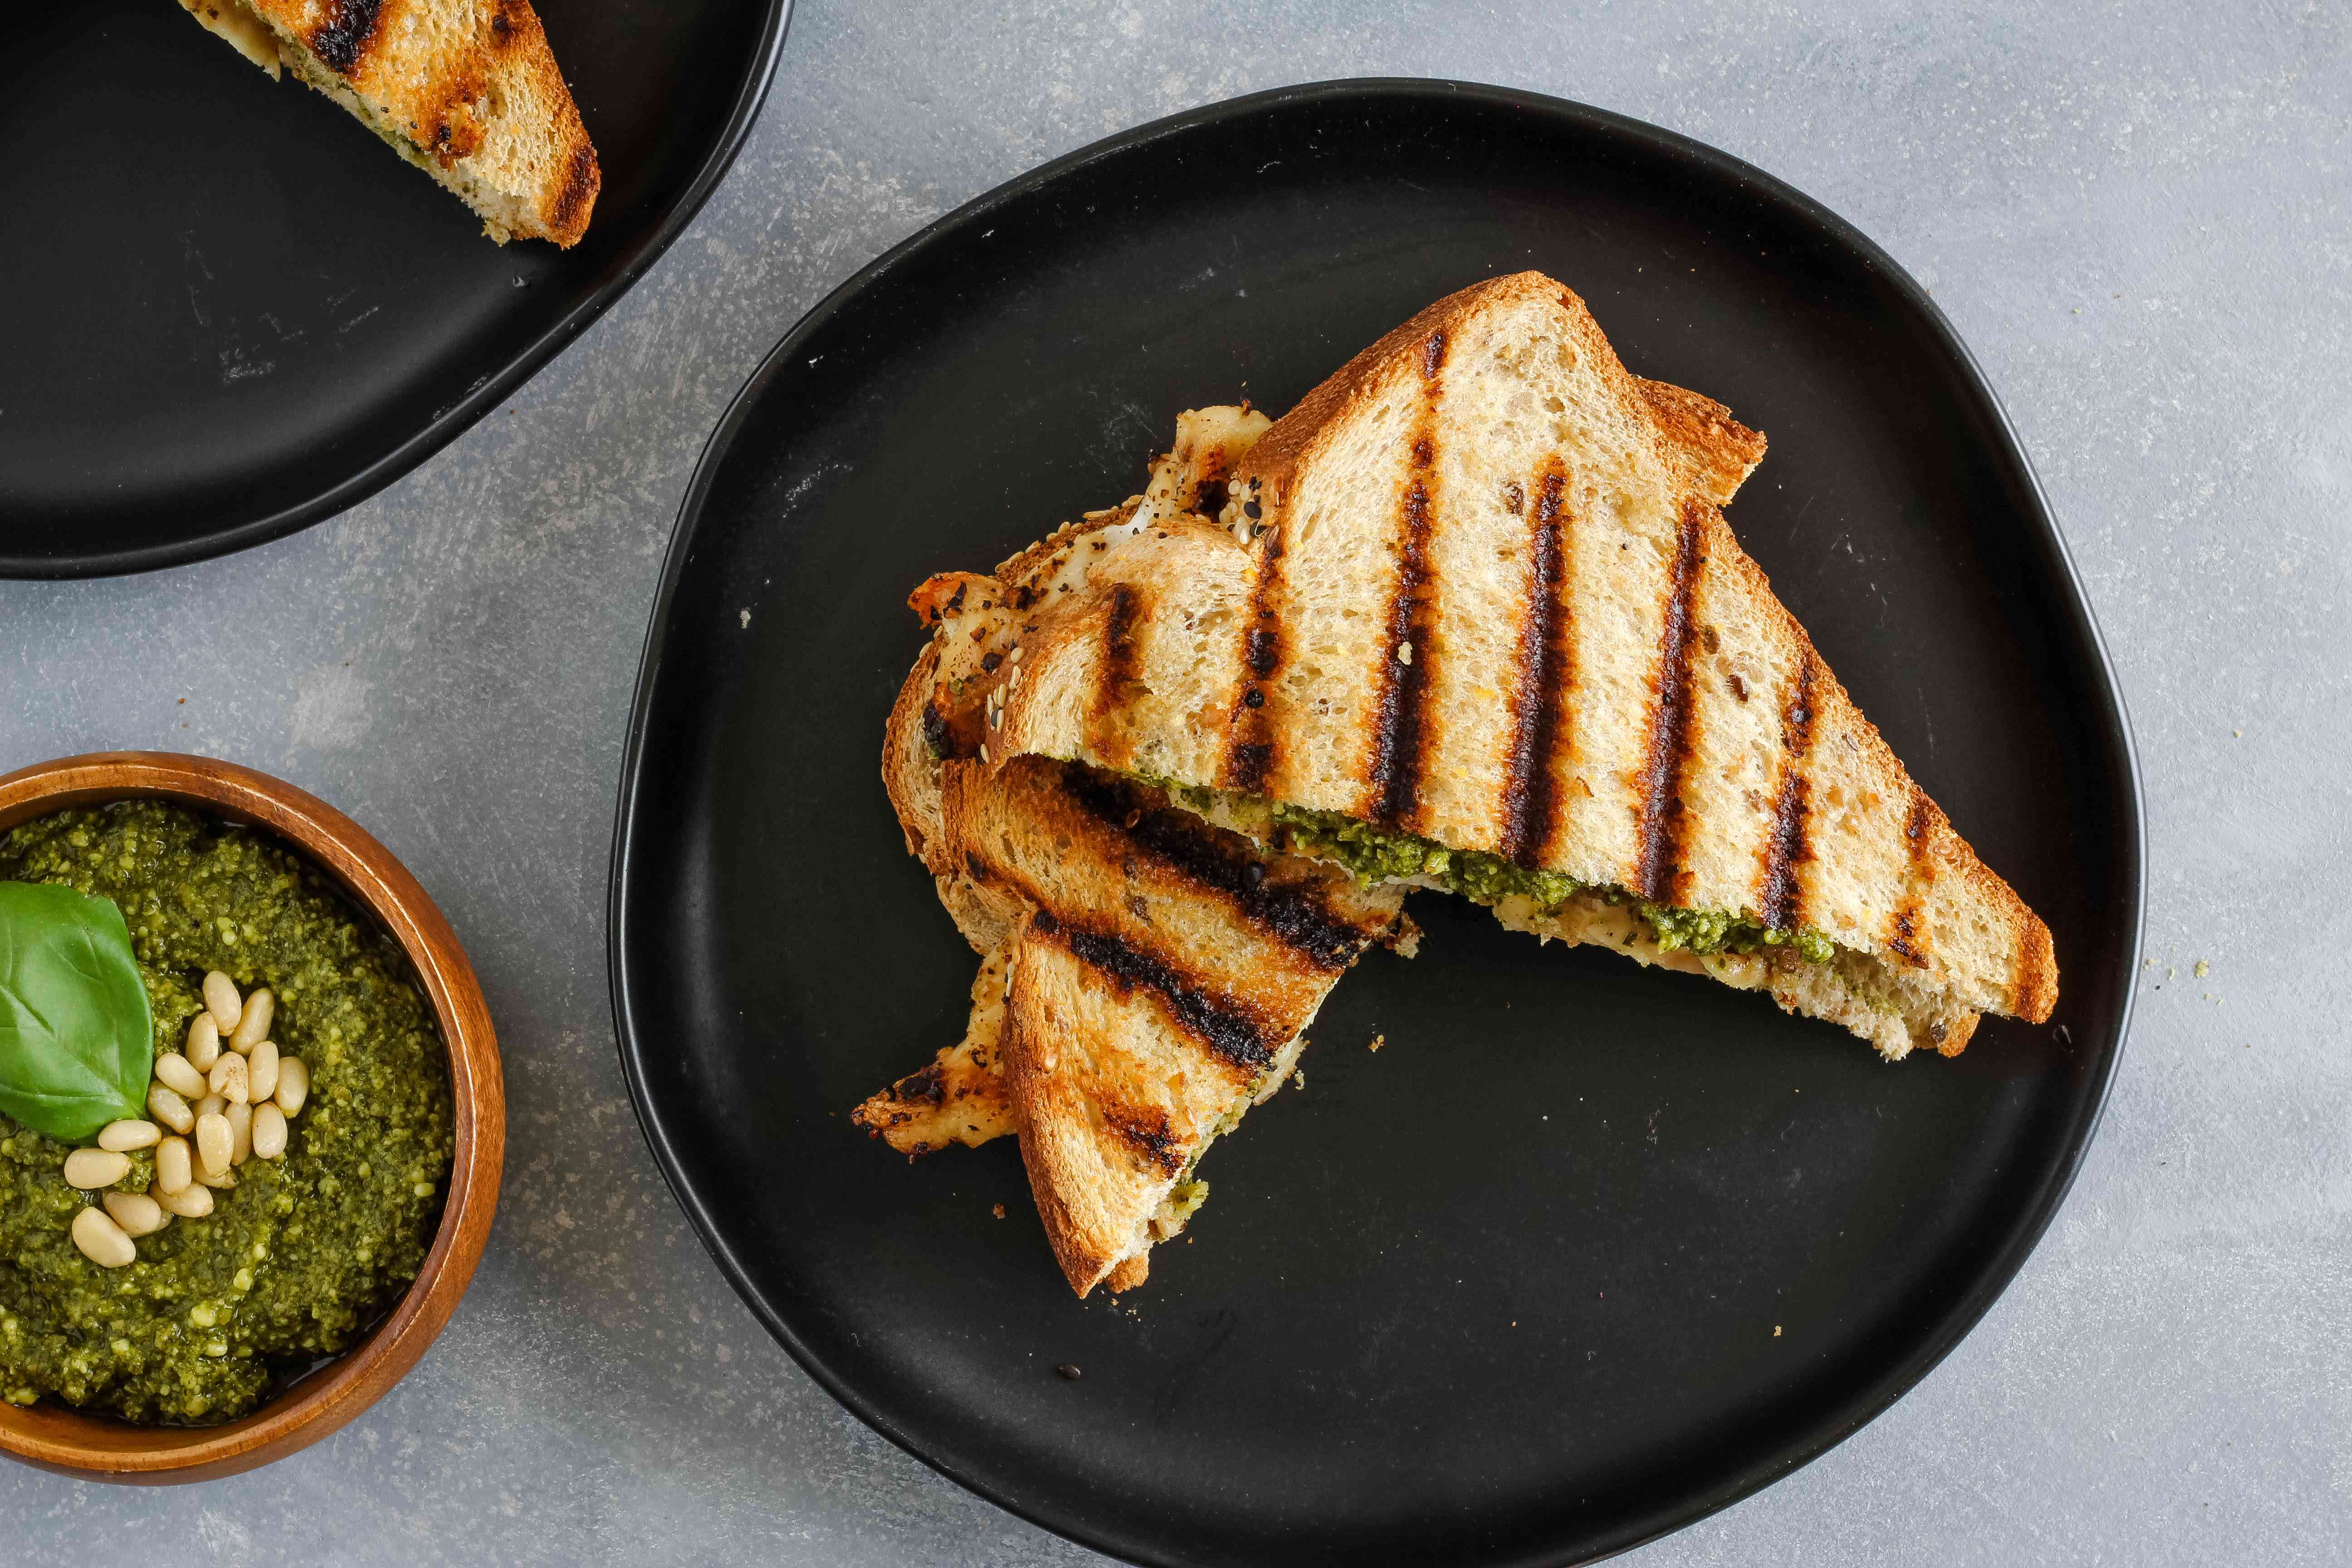 Grilled chicken panini sandwich on a plate